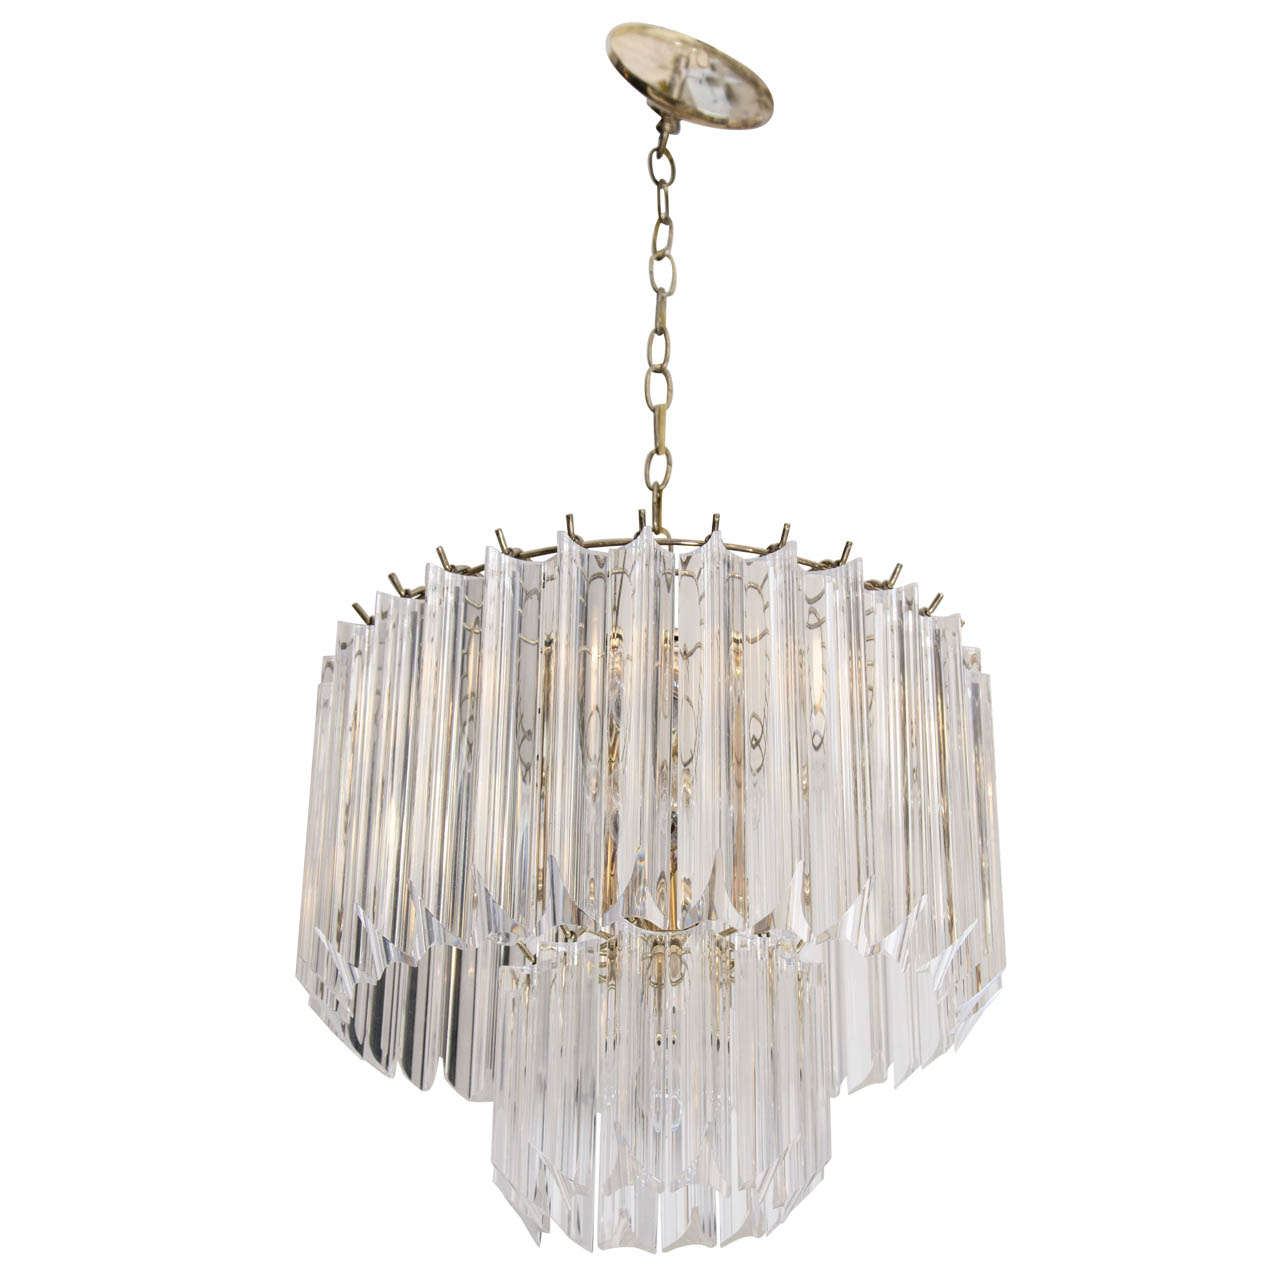 A 1970s Lucite Two Tiered Chandelier at 1stdibs